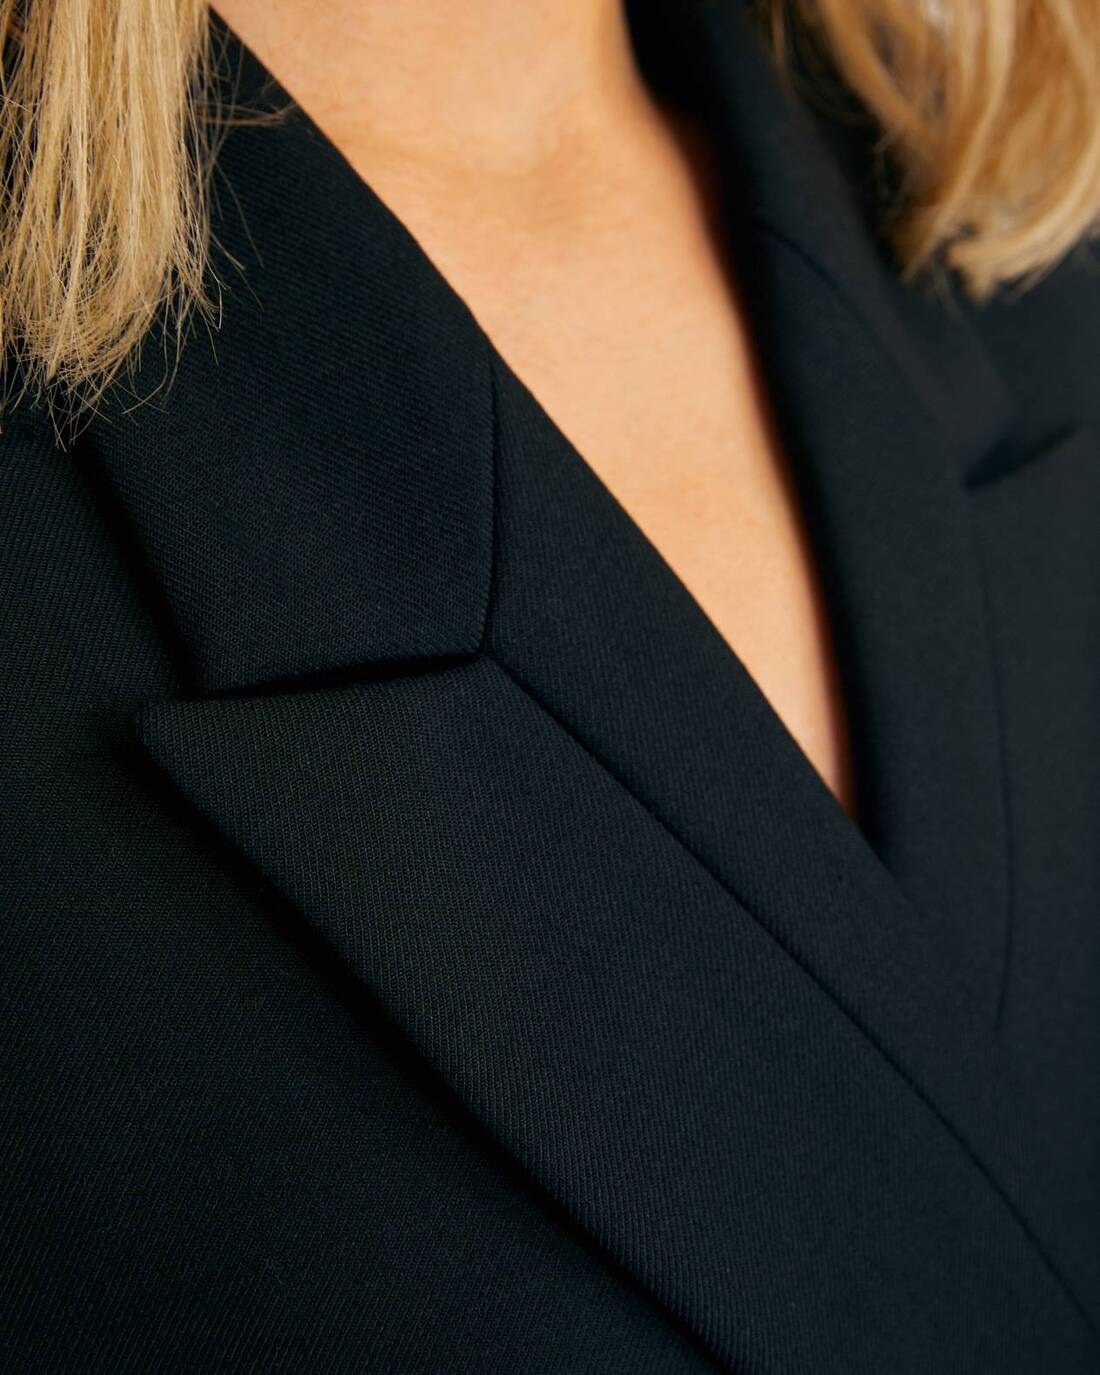 Double-breasted jacket with notched lapels